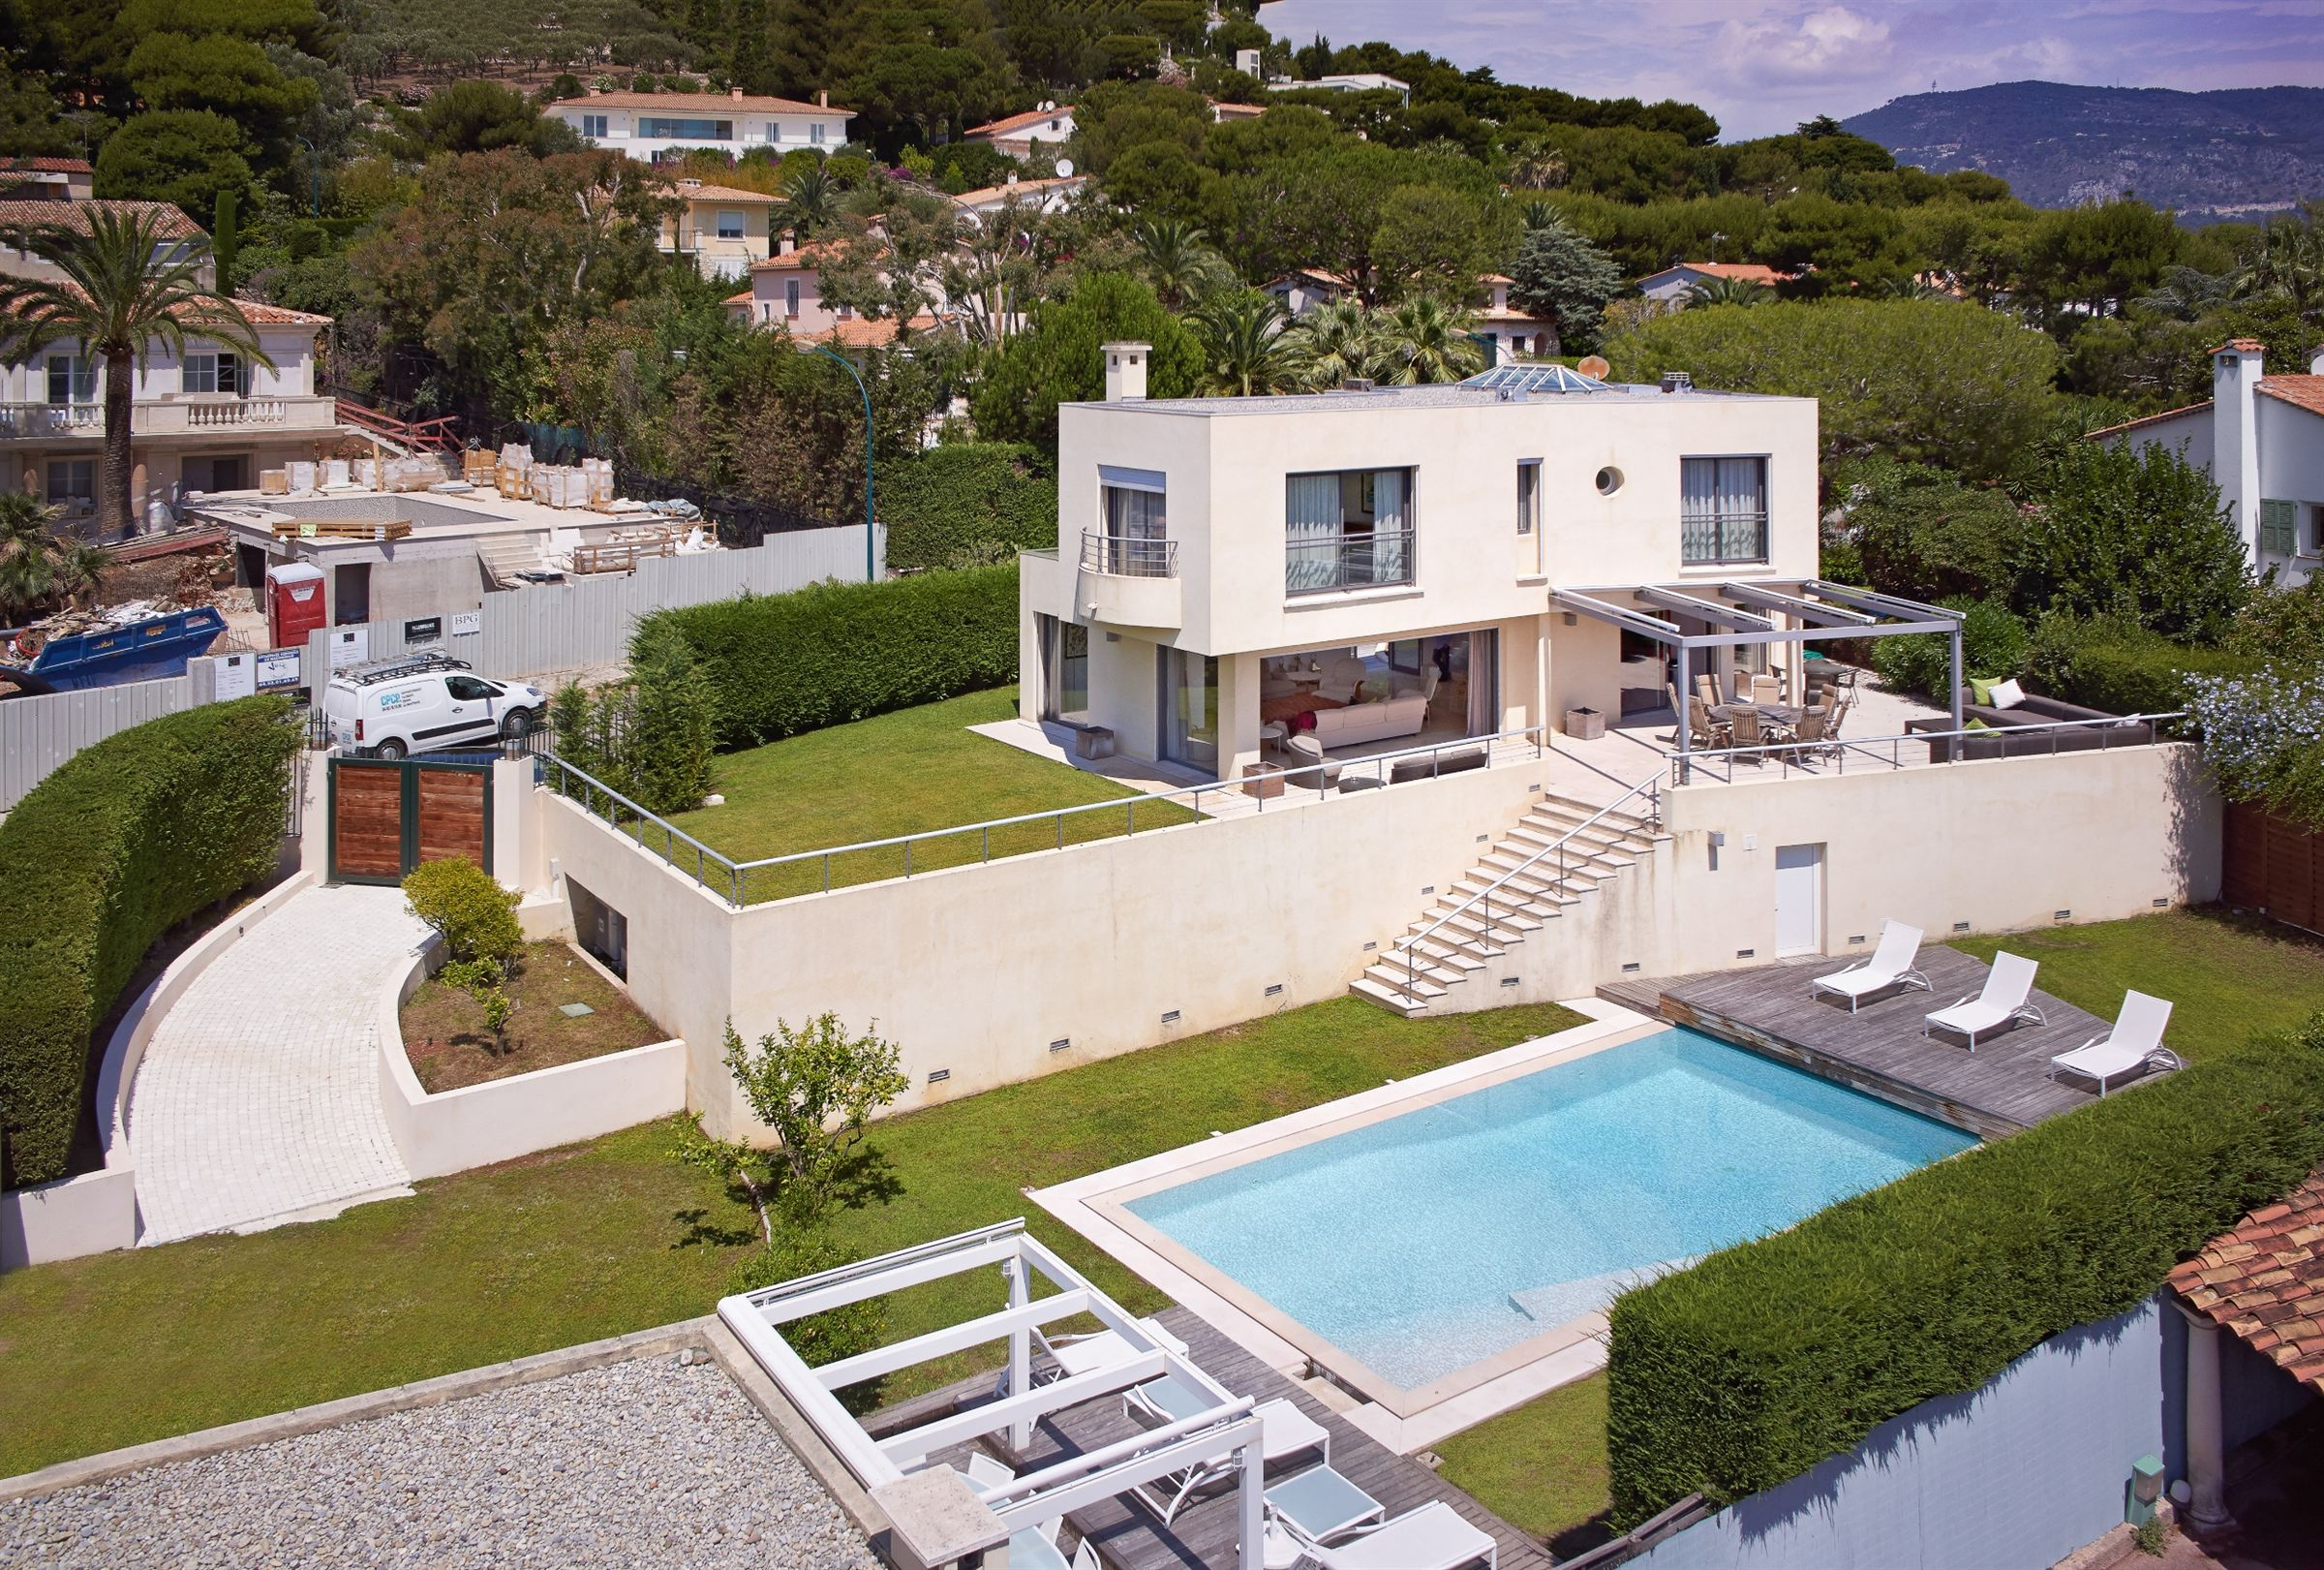 Single Family Home for Sale at Contemporary villa close to the 'Grand Hôtel' Other Provence-Alpes-Cote D'Azur, Provence-Alpes-Cote D'Azur, 06230 France